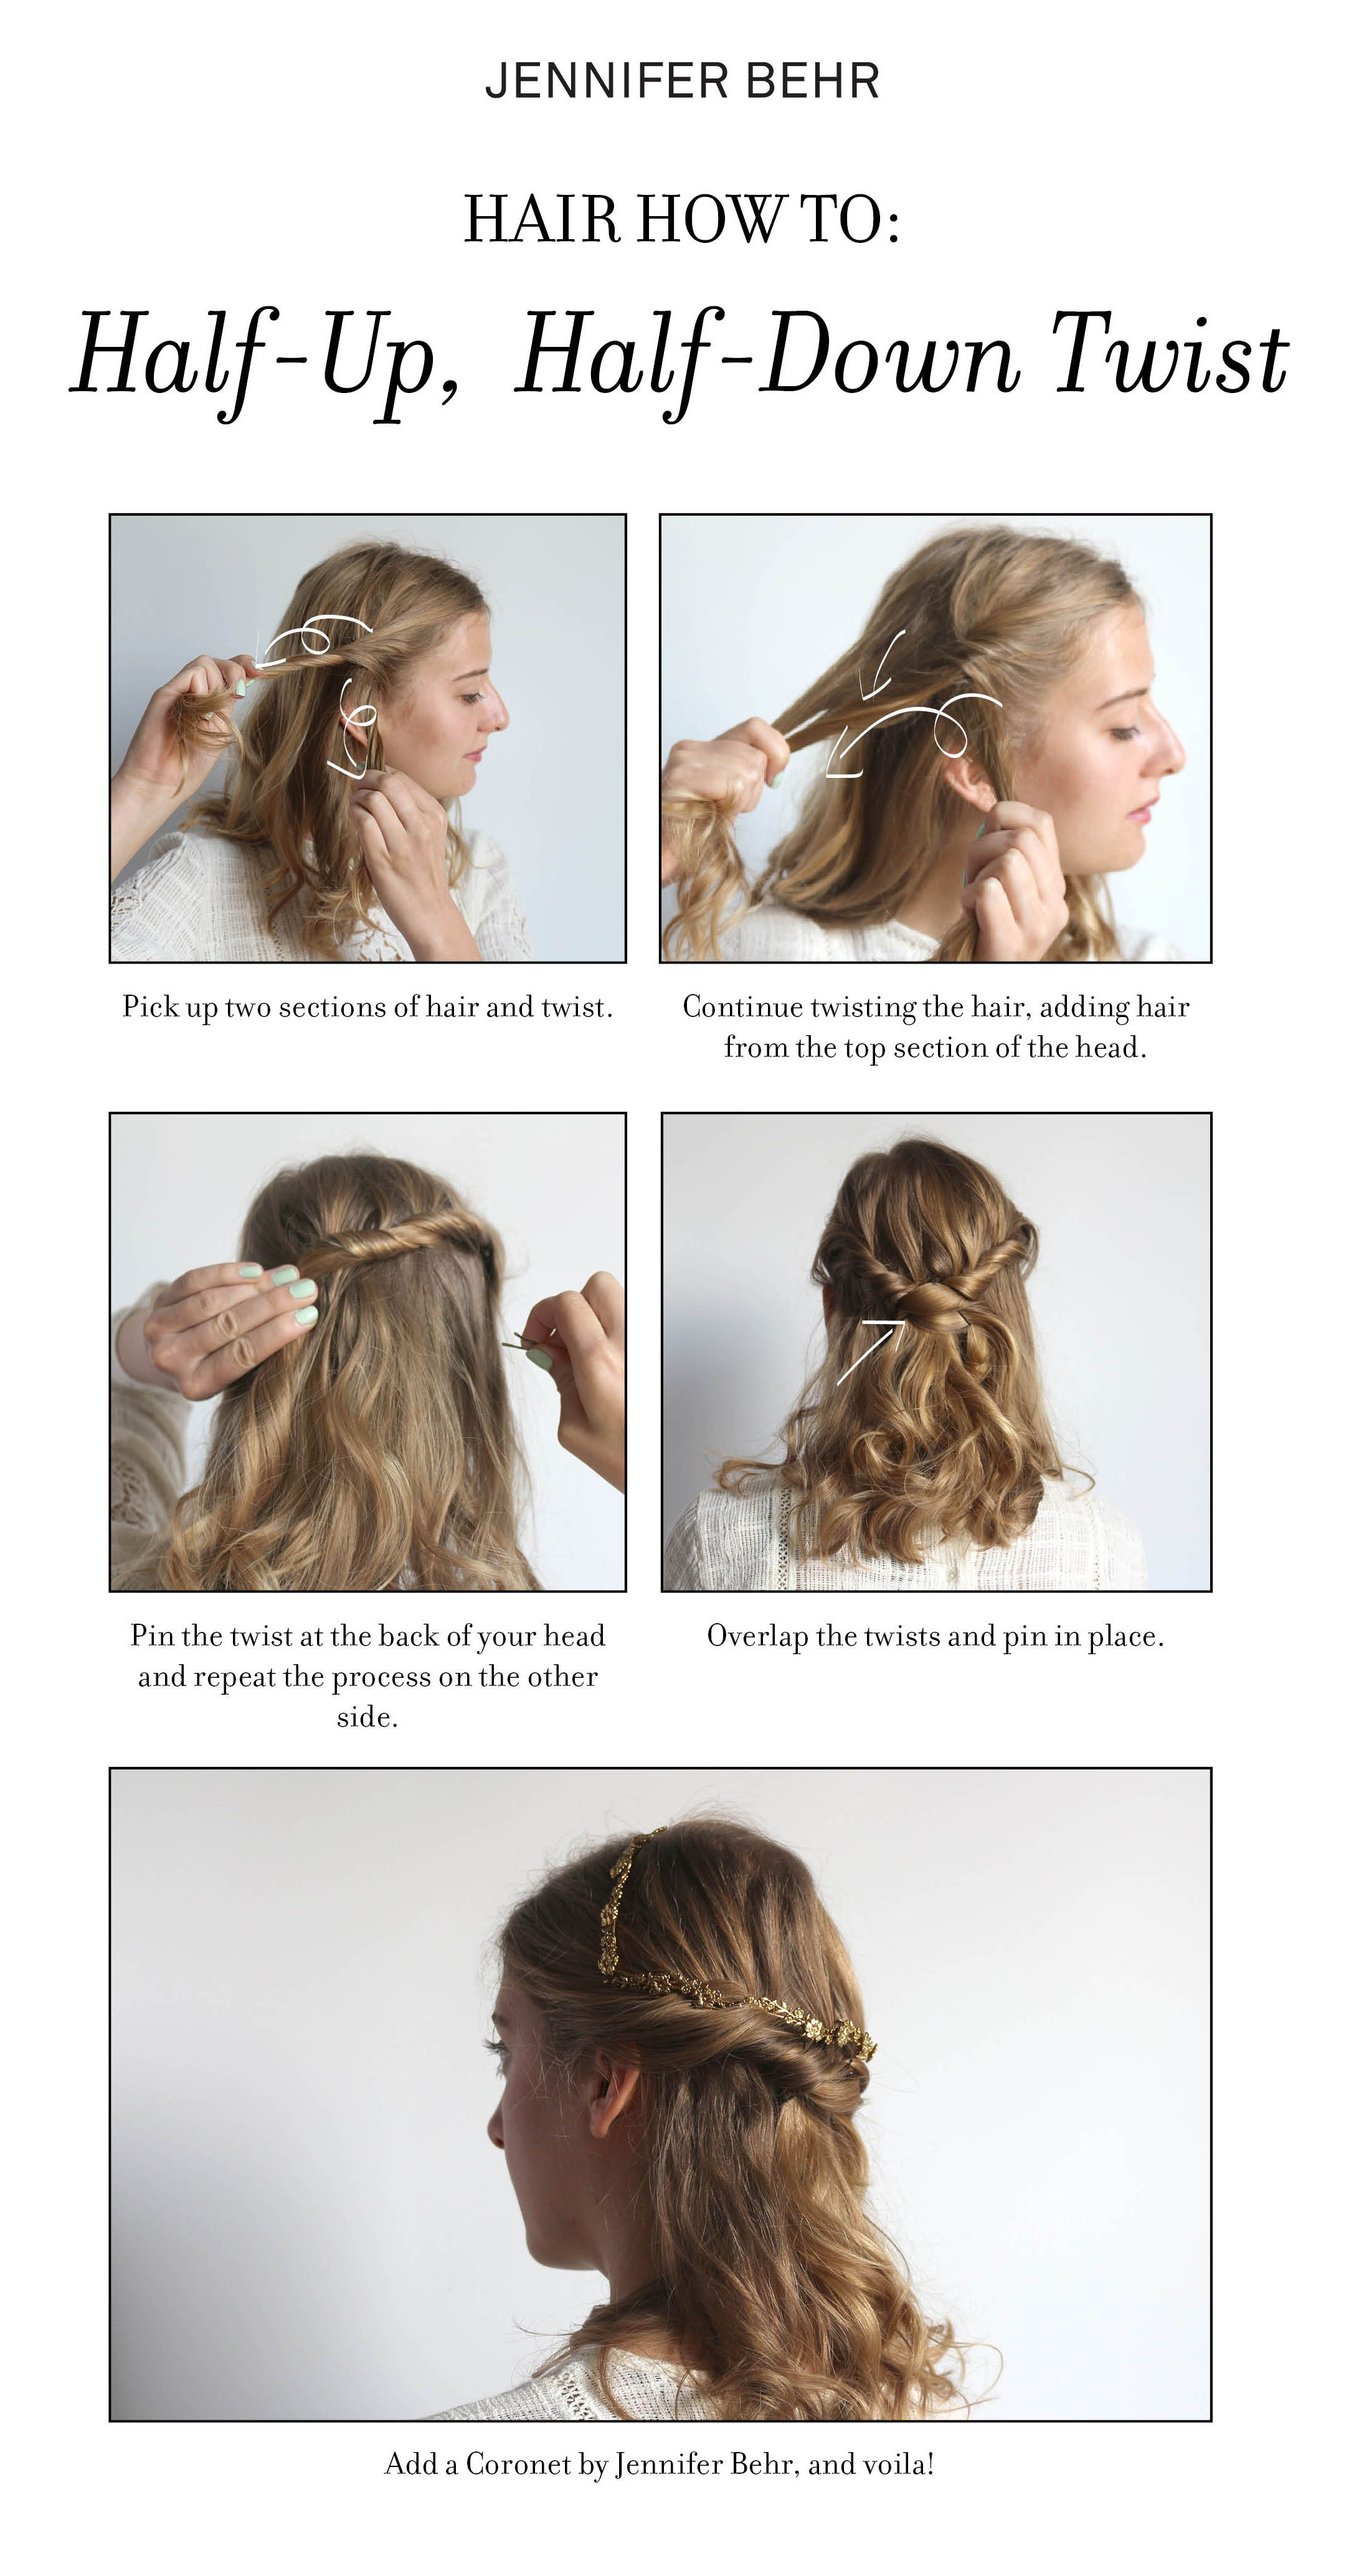 How to style a Coronet - a headband style unique to Jennifer Behr ...